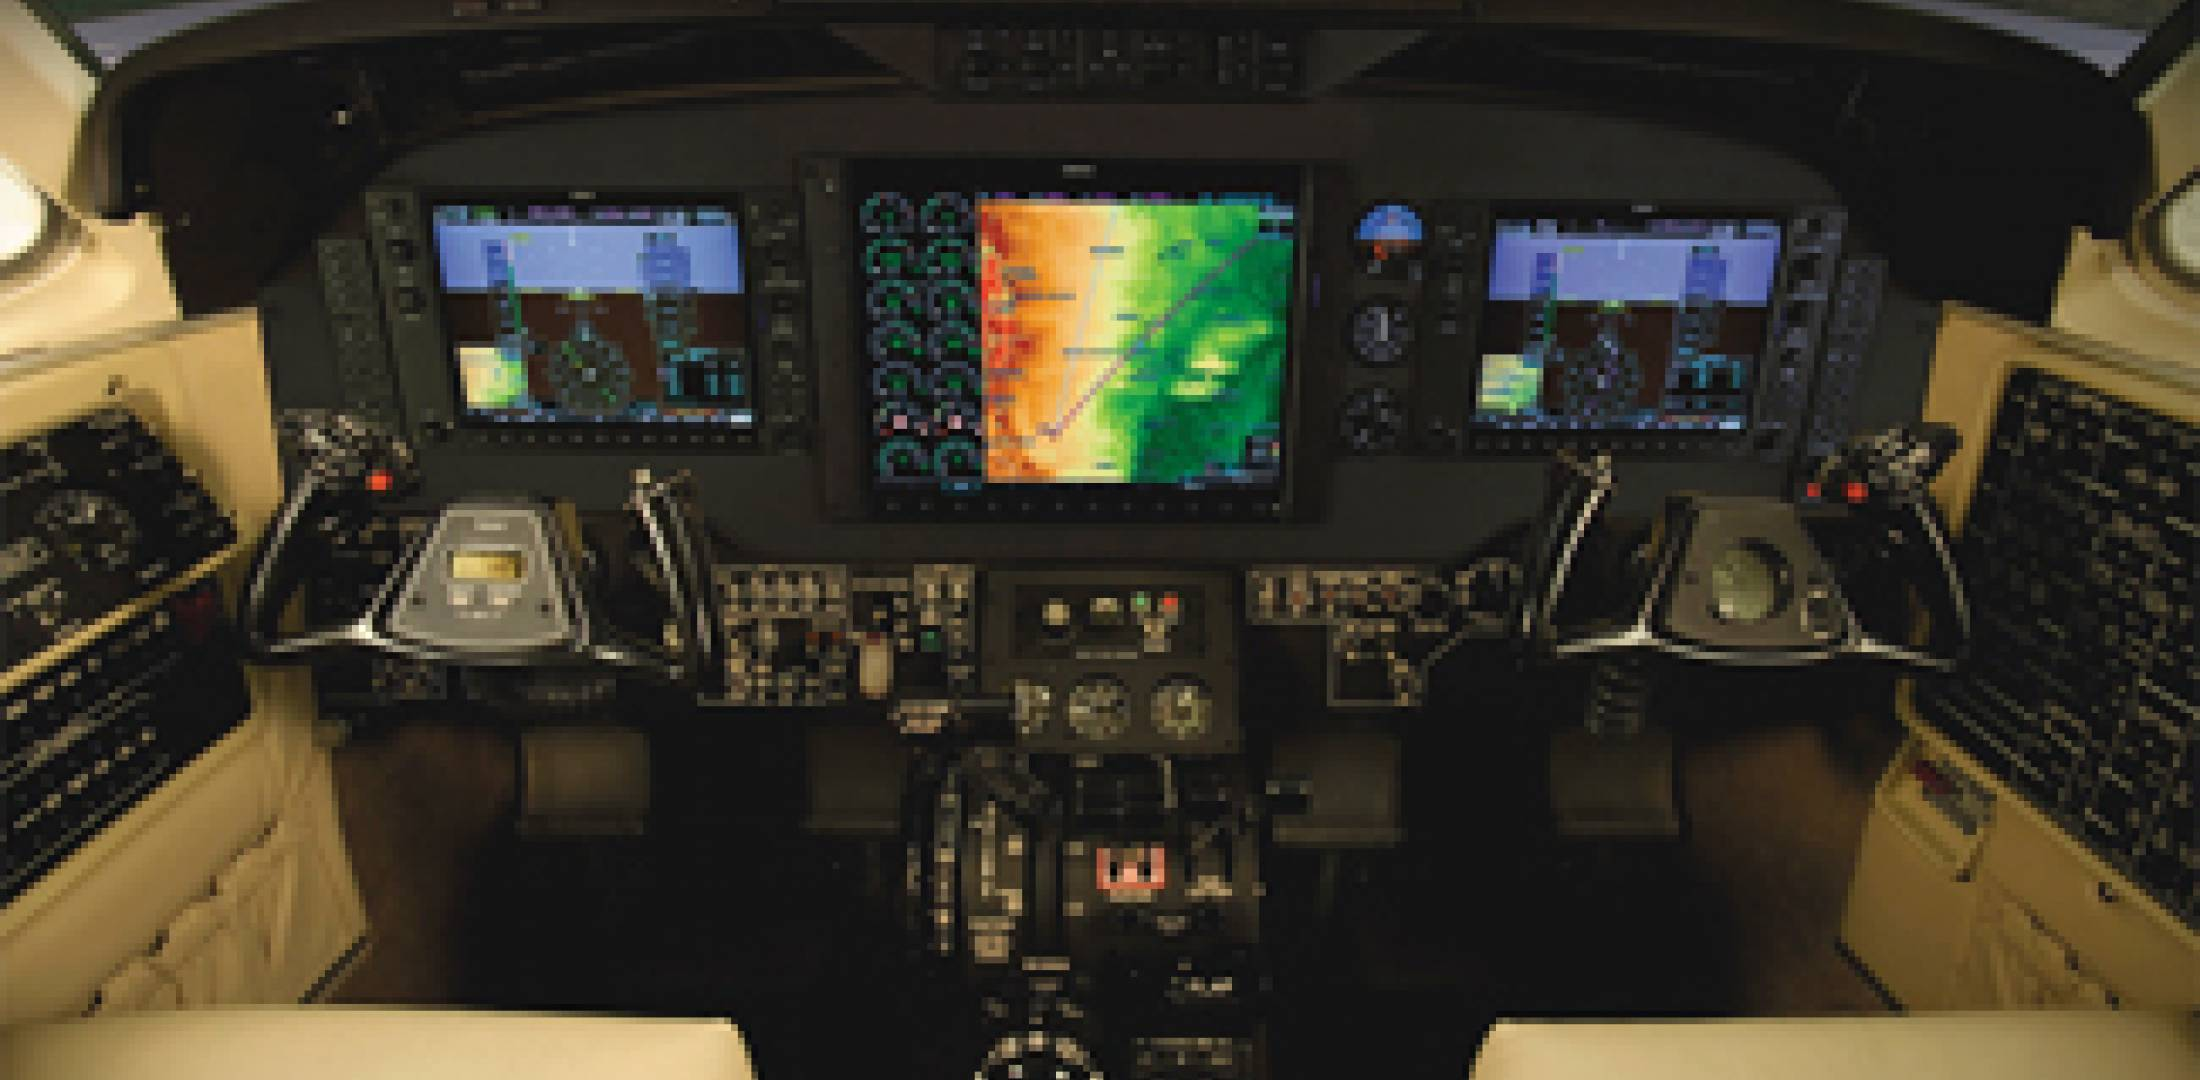 074 AA?itok=_cGF6hxa&timestamp=1325687808 garmin reveals first retrofit packages for popular g1000 King Air 200 at aneh.co